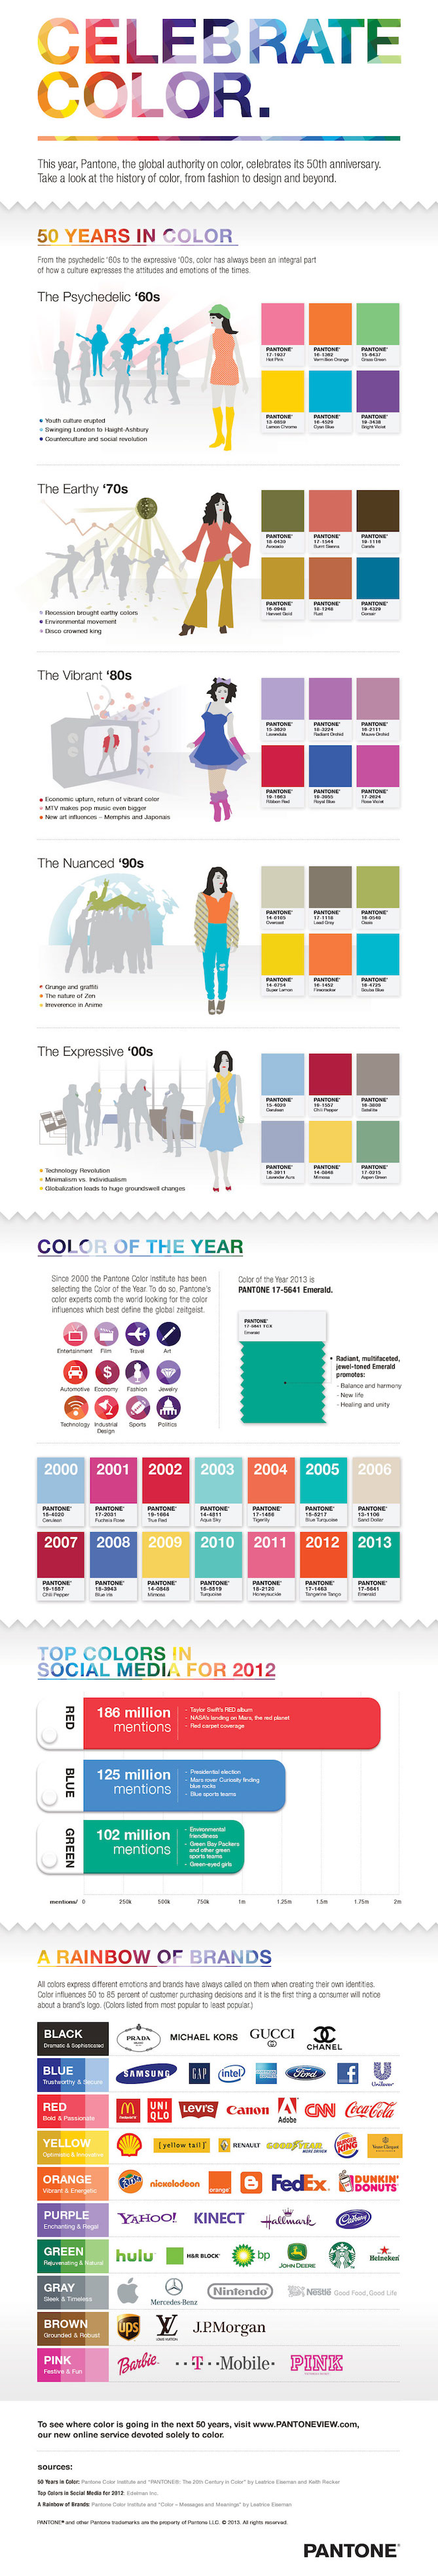 pantone-50-years-color.jpg